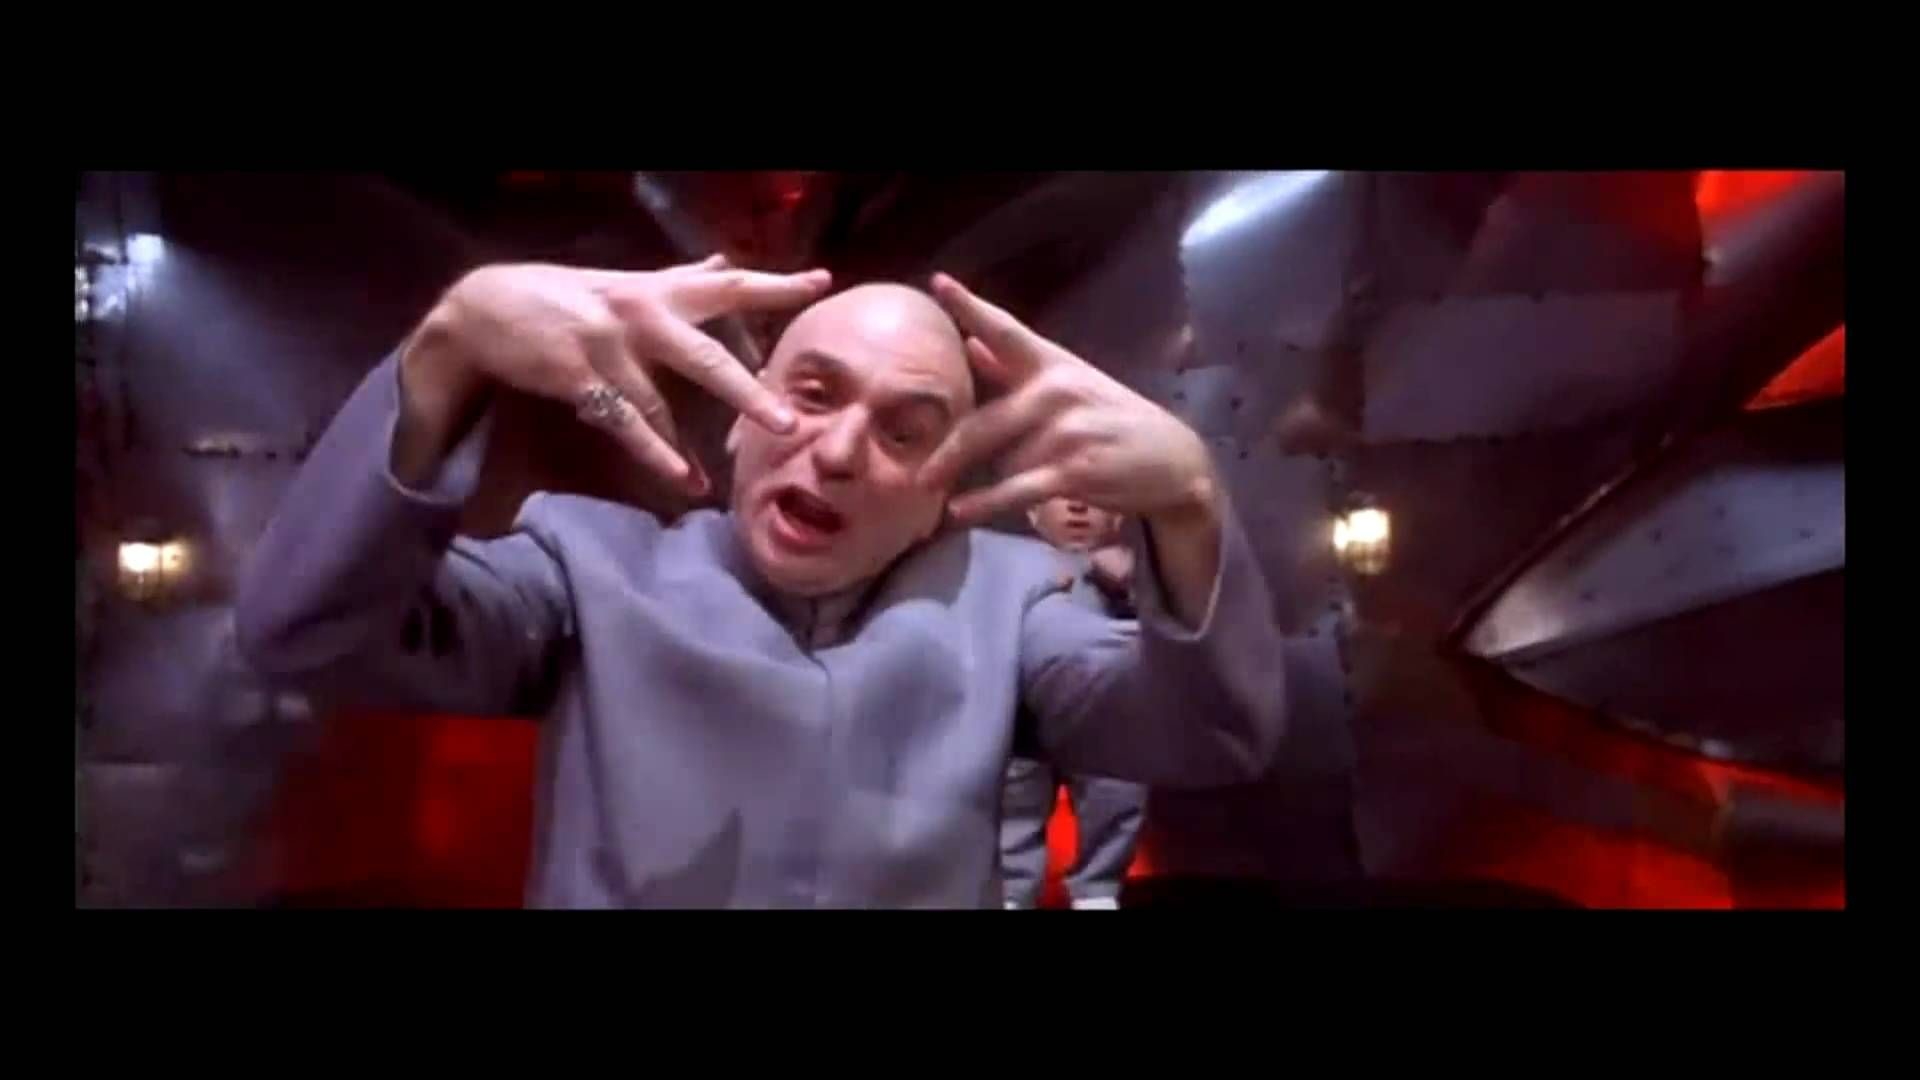 Res: 1920x1080, Doctor Evil rap... Just The Two Of Us. LUB IT!